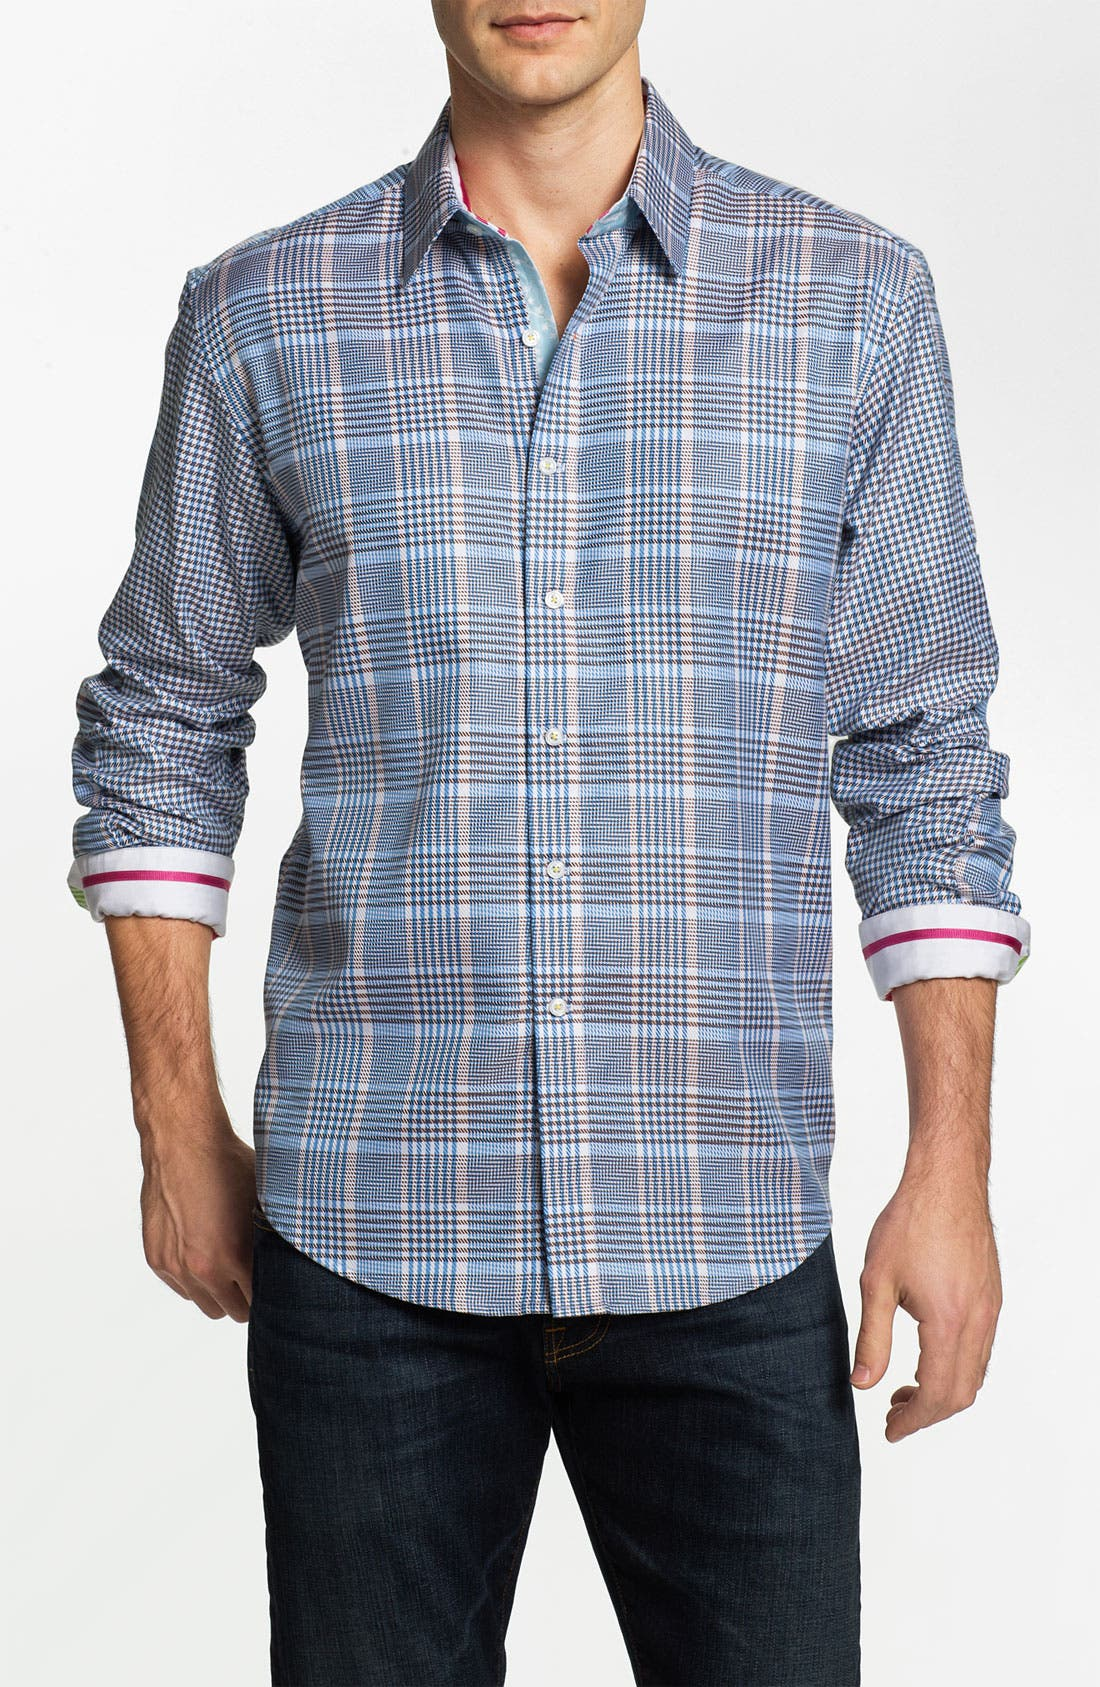 Alternate Image 1 Selected - Robert Graham 'Swizzle' Sport Shirt